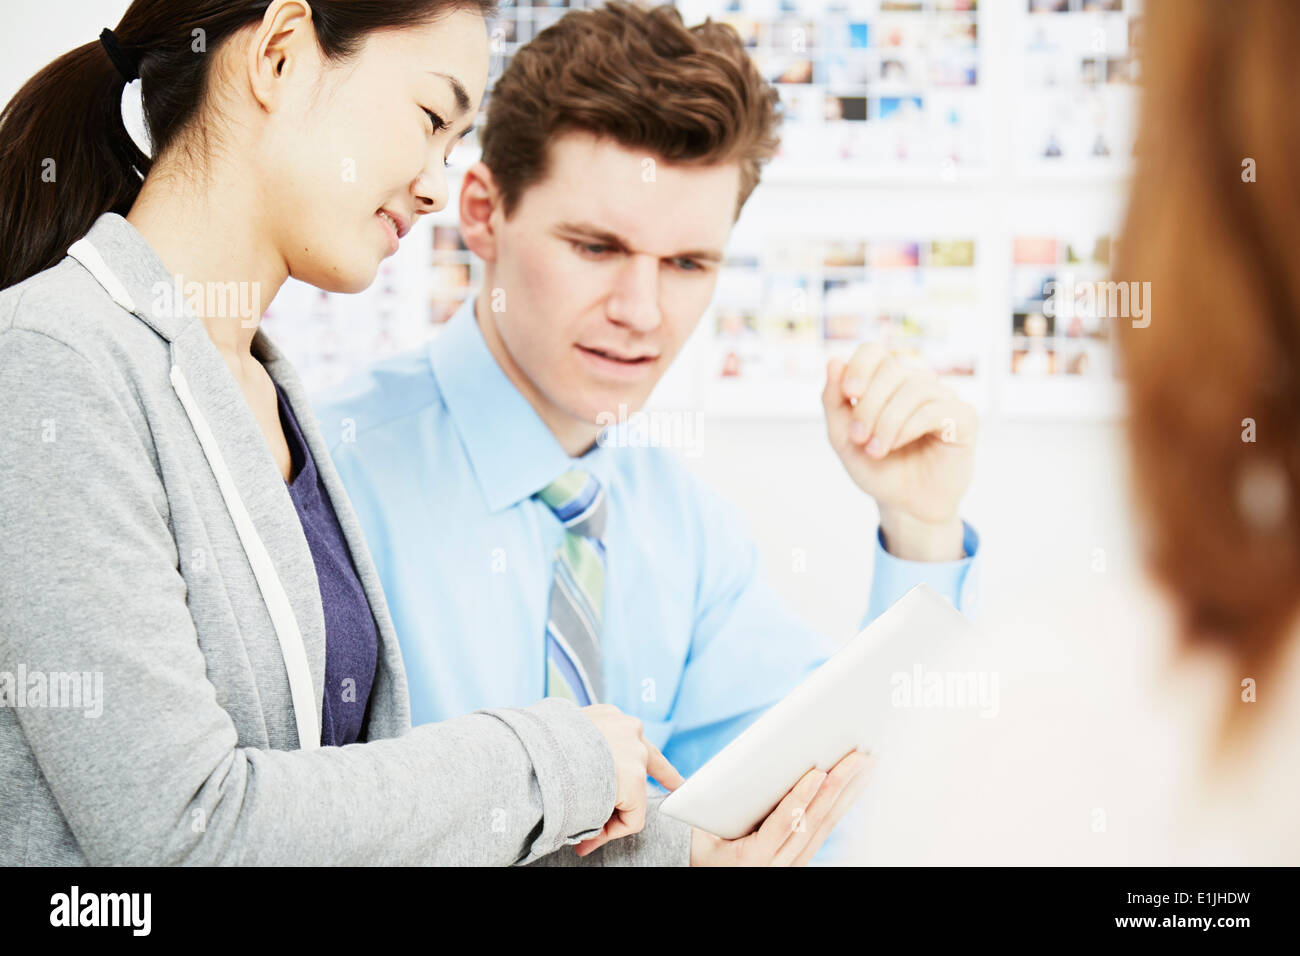 Business colleagues in discussion with digital tablet - Stock Image